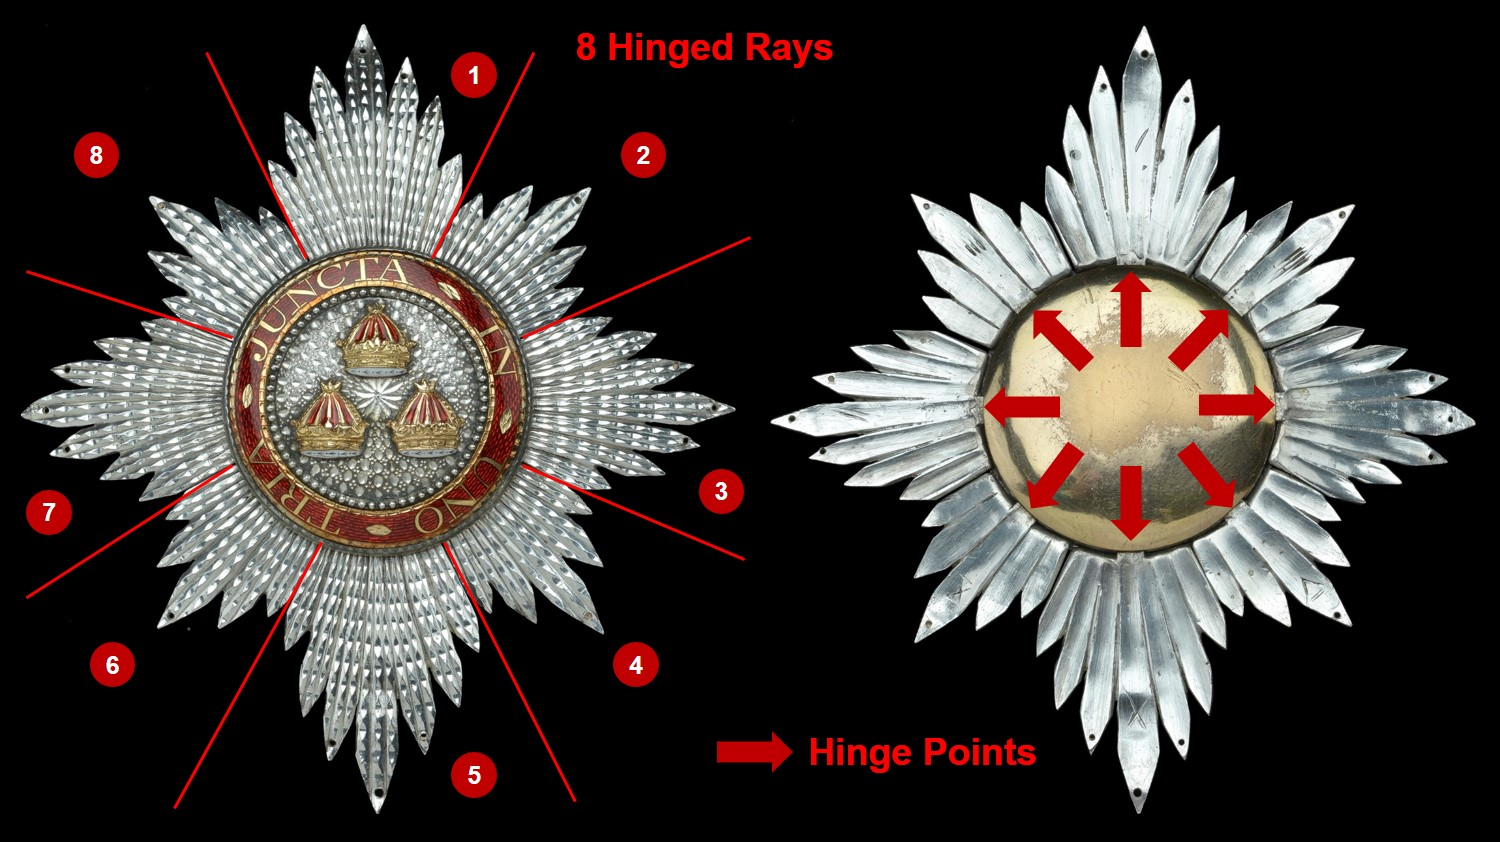 Figure 2 – Star of the Knight Companion of the Bath (K.B.). Base image courtesy of DNW.